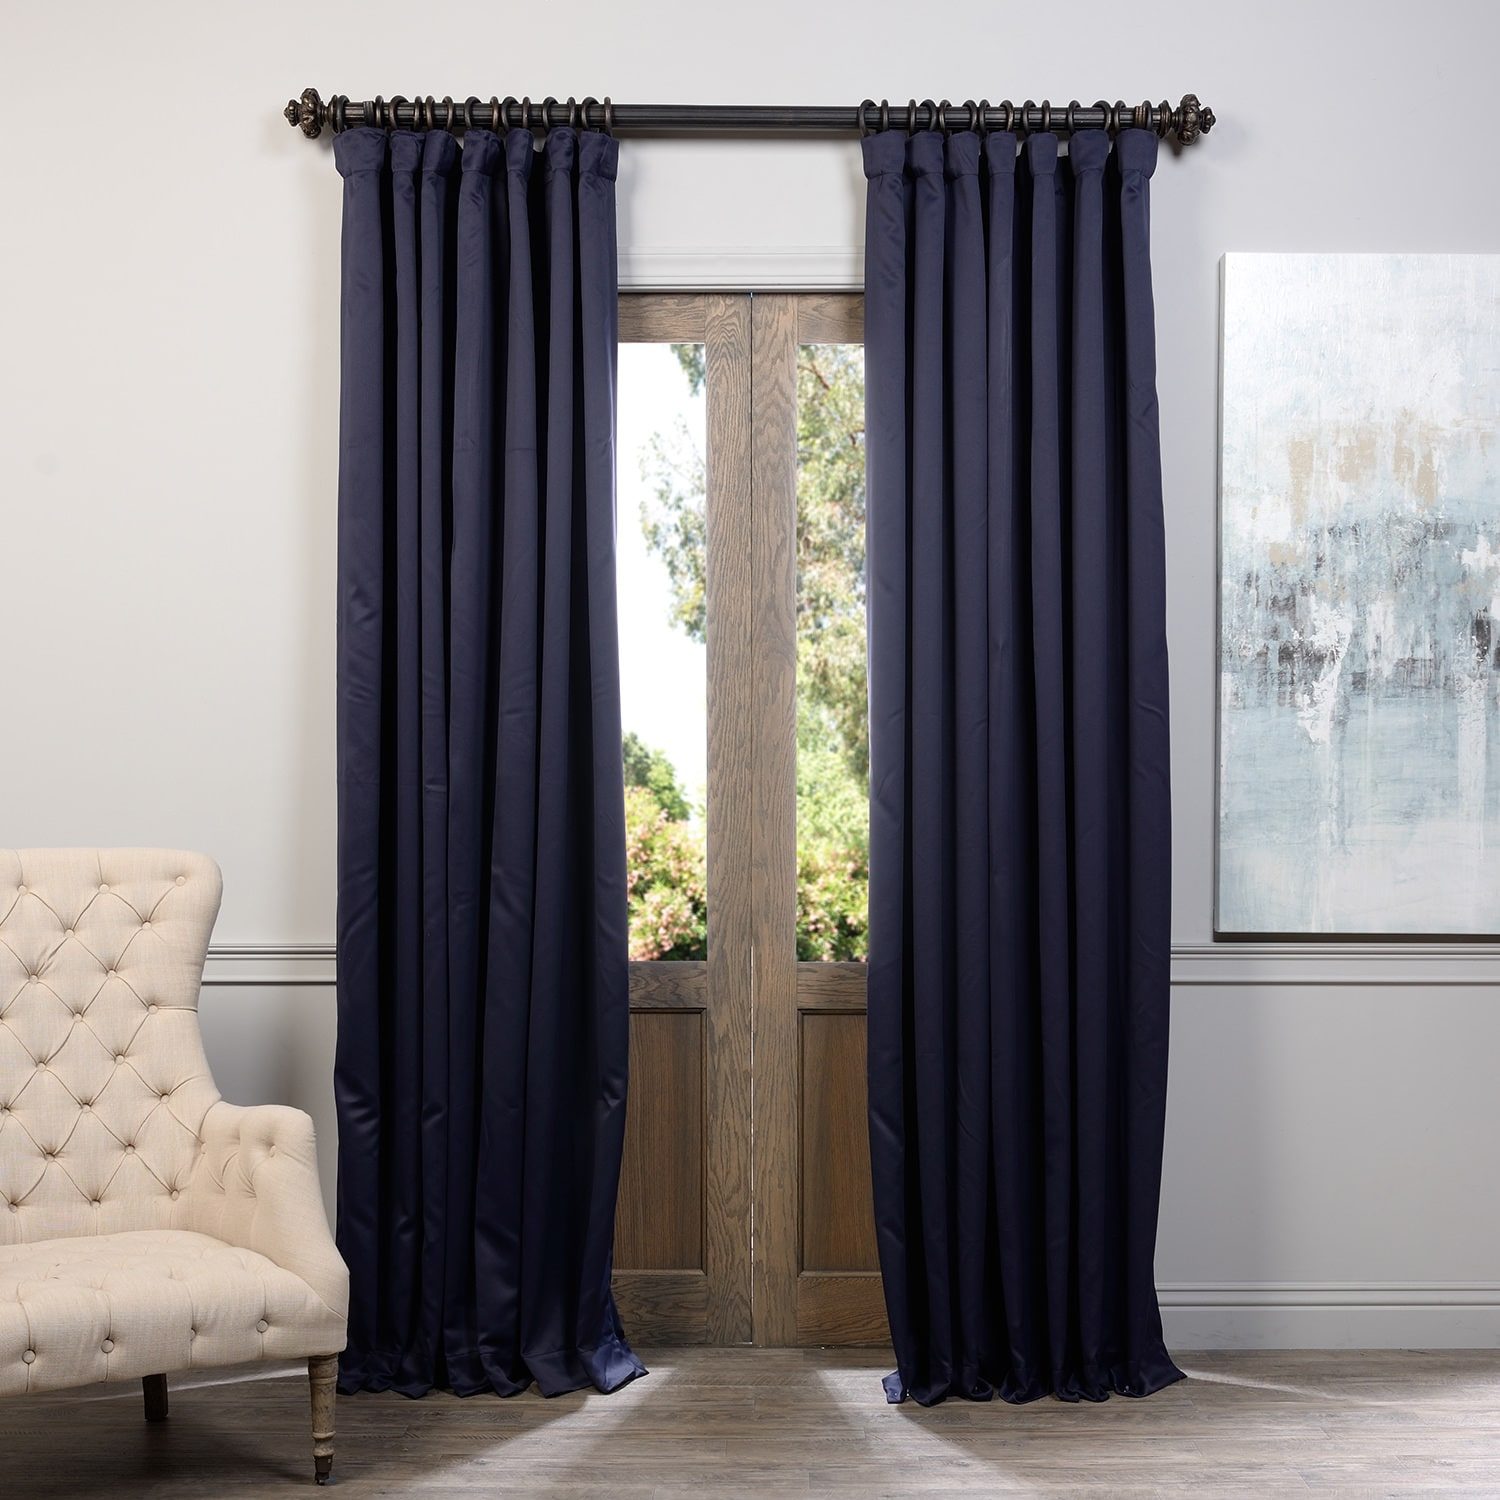 Extraordinary Ideas Blackout Curtains 108 Inches Blackout Curtains Pertaining To Extra Wide Thermal Curtains (Image 11 of 15)